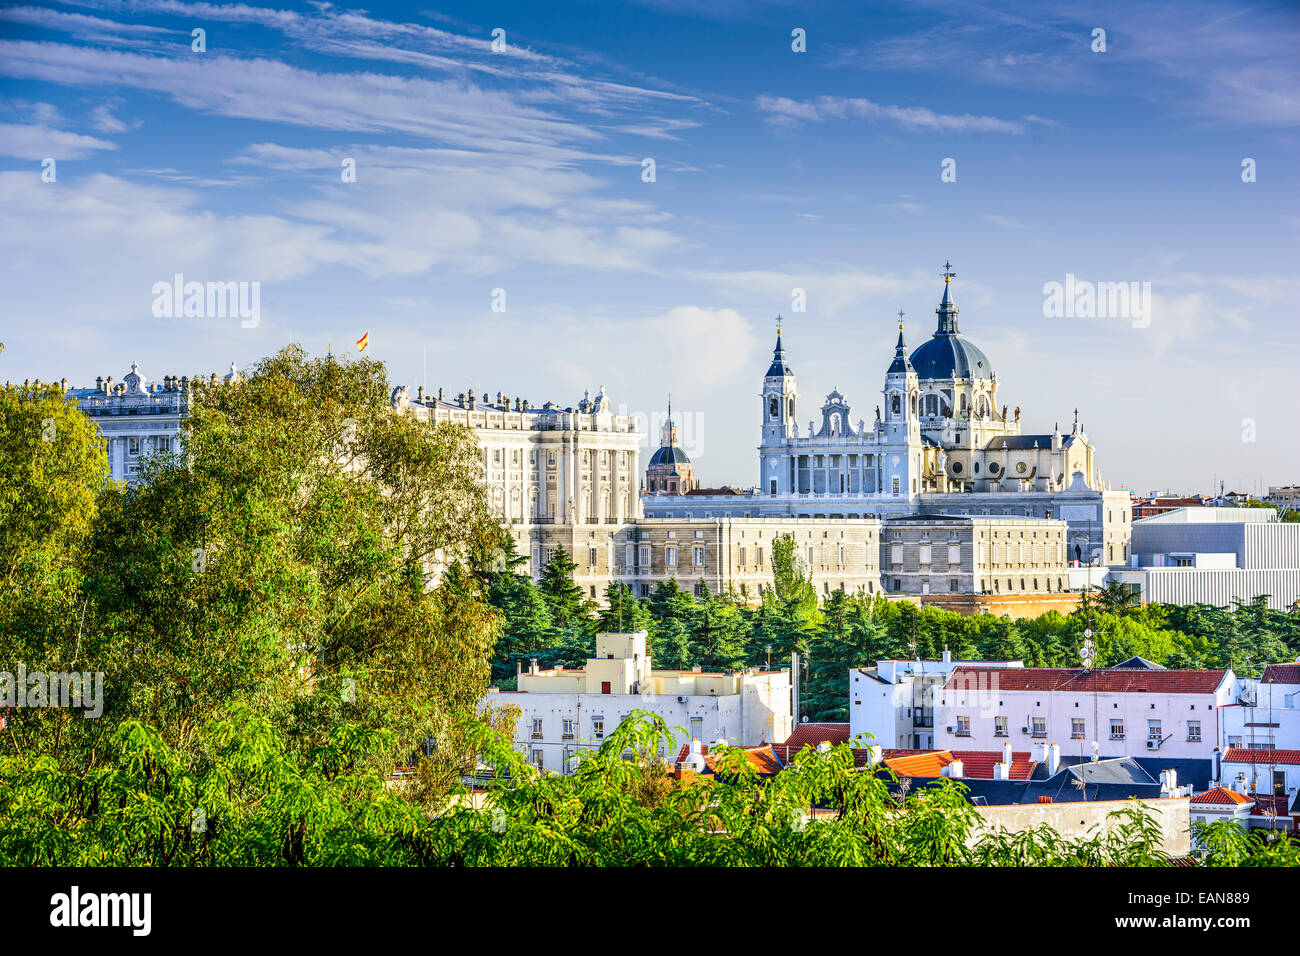 Madrid, Spain skyline at Santa Maria la Real de La Almudena Cathedral and the Royal Palace. Stock Photo